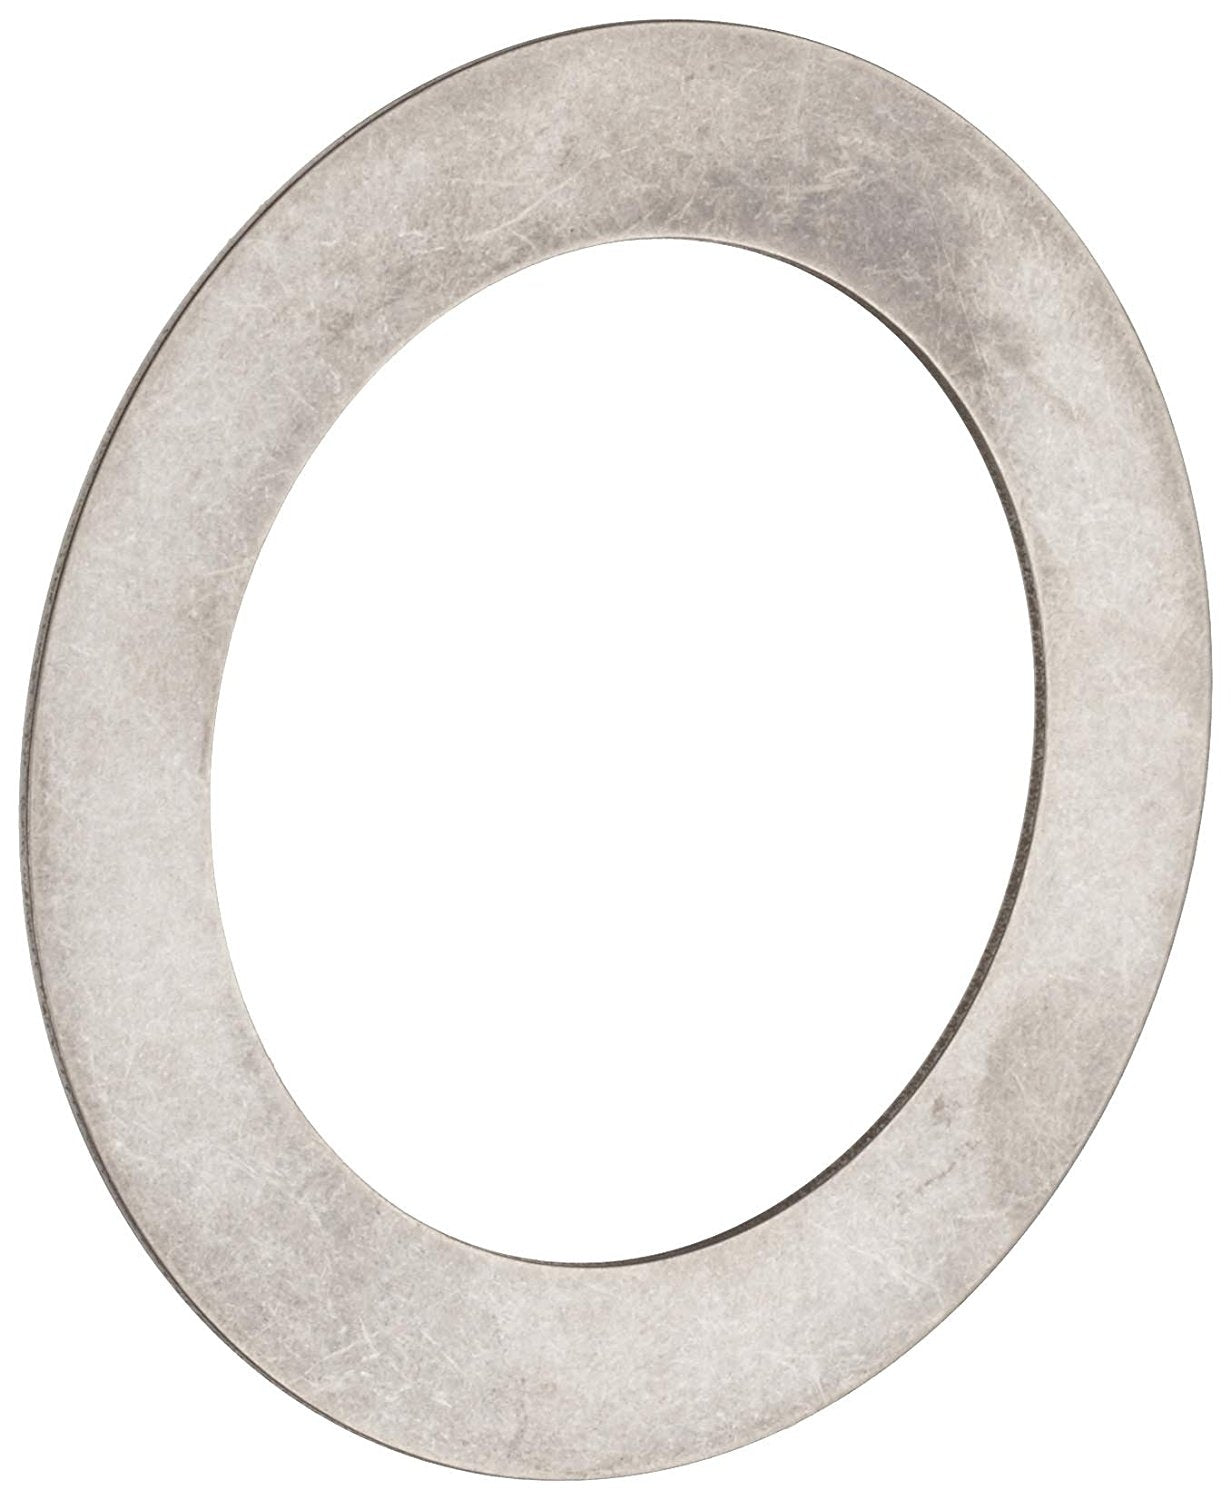 INA WS81213 Thrust Roller Bearing Shaft Washer, Metric, 65mm ID, 100mm OD, 27mm Width